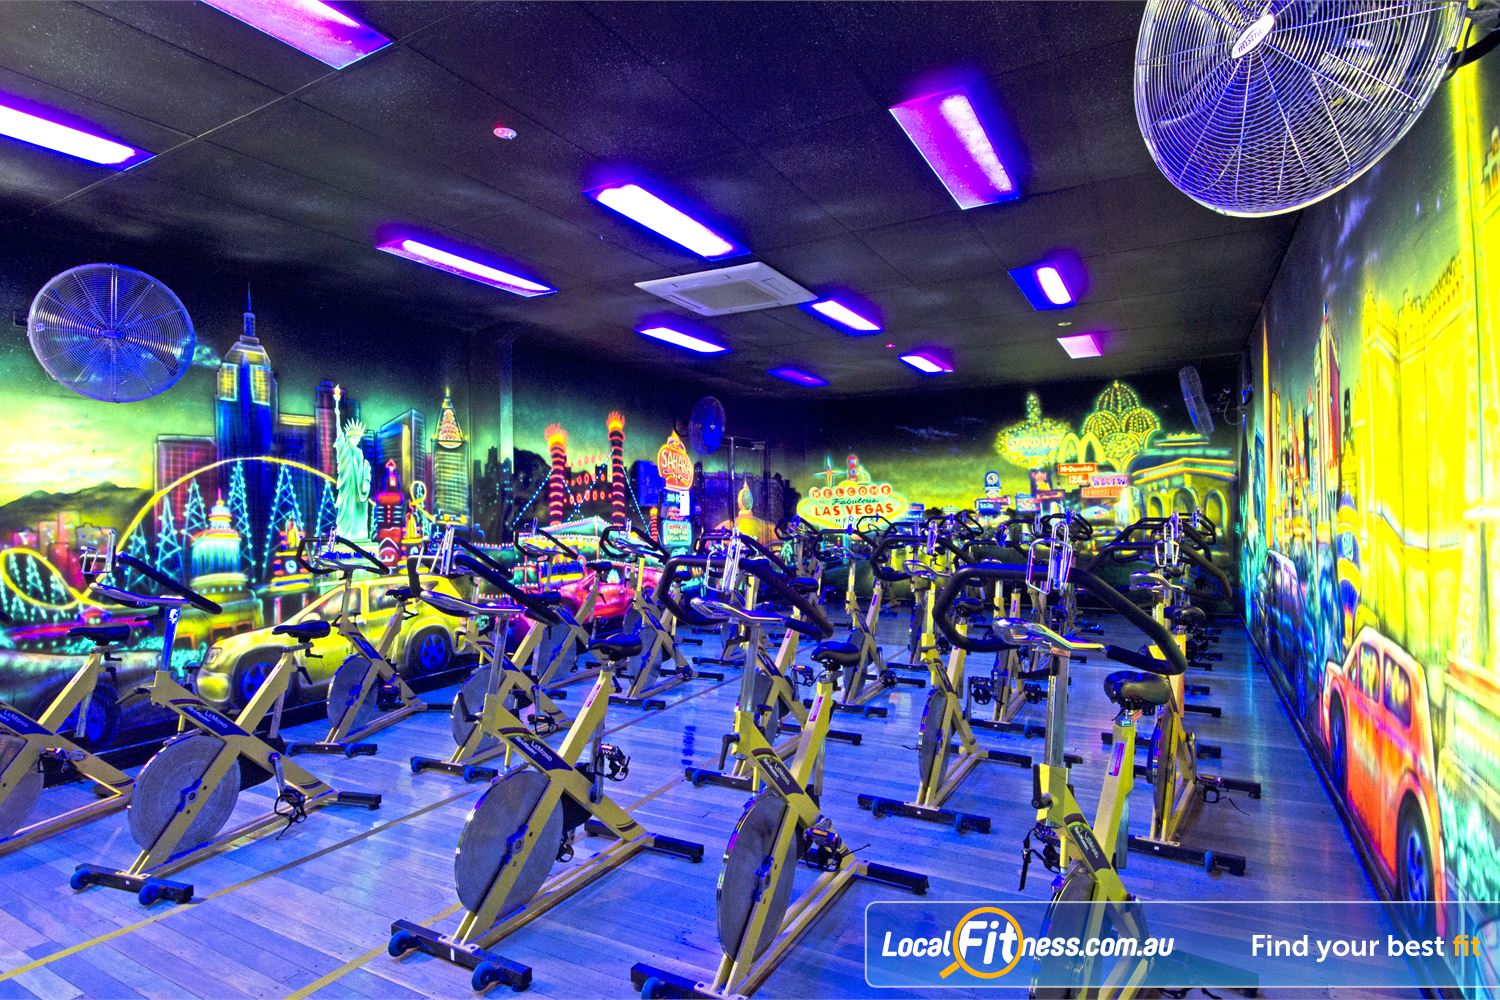 Goodlife Health Clubs Near Albany Creek Dedicated Carseldine spin cycle studio.